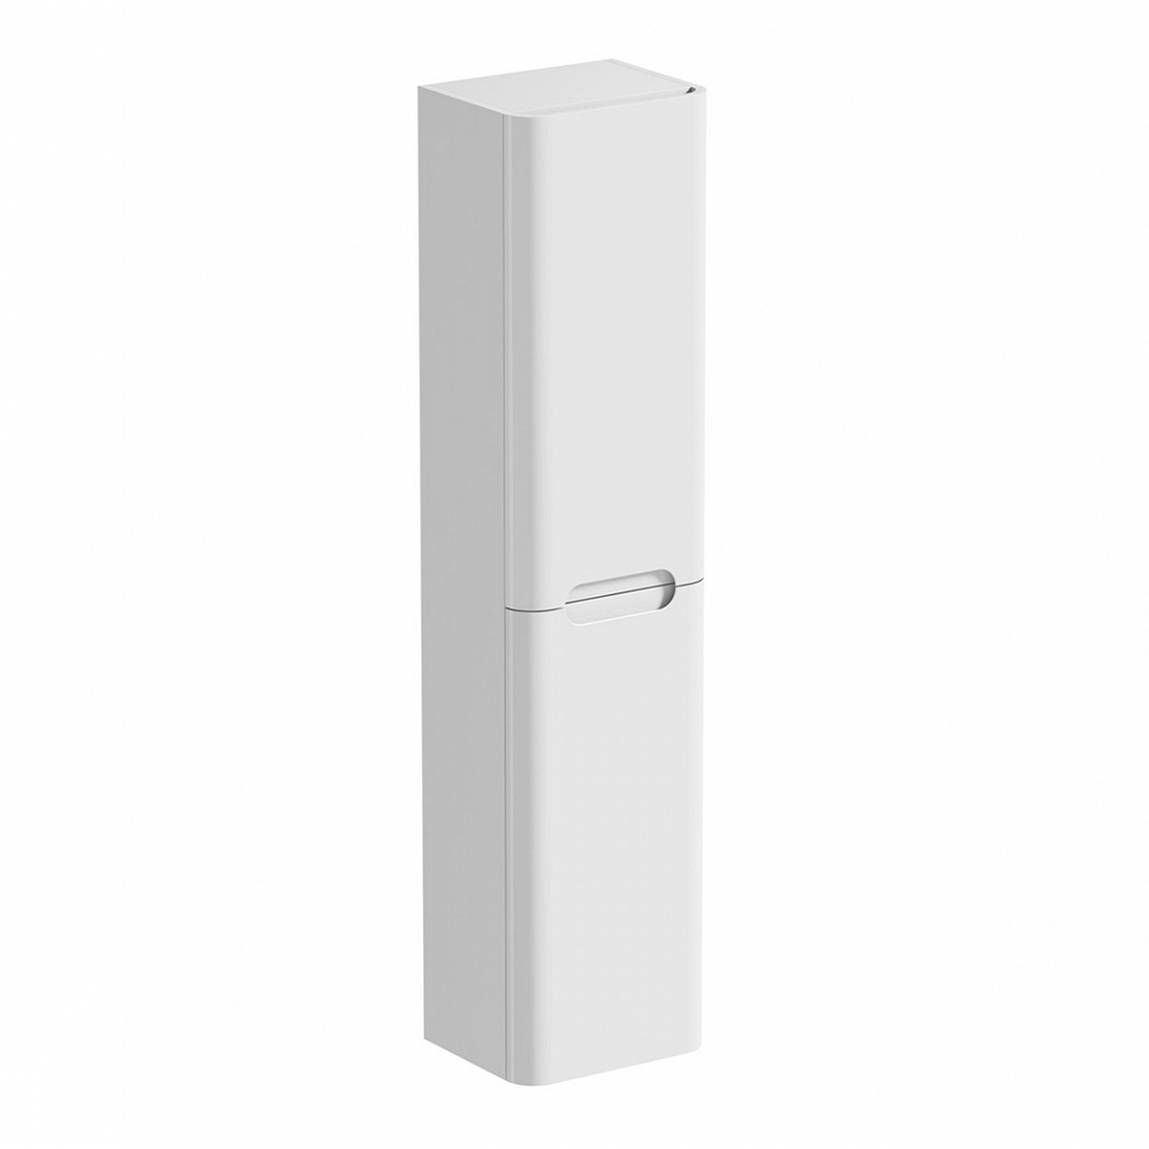 Image of Planet Select White Wall Cabinet